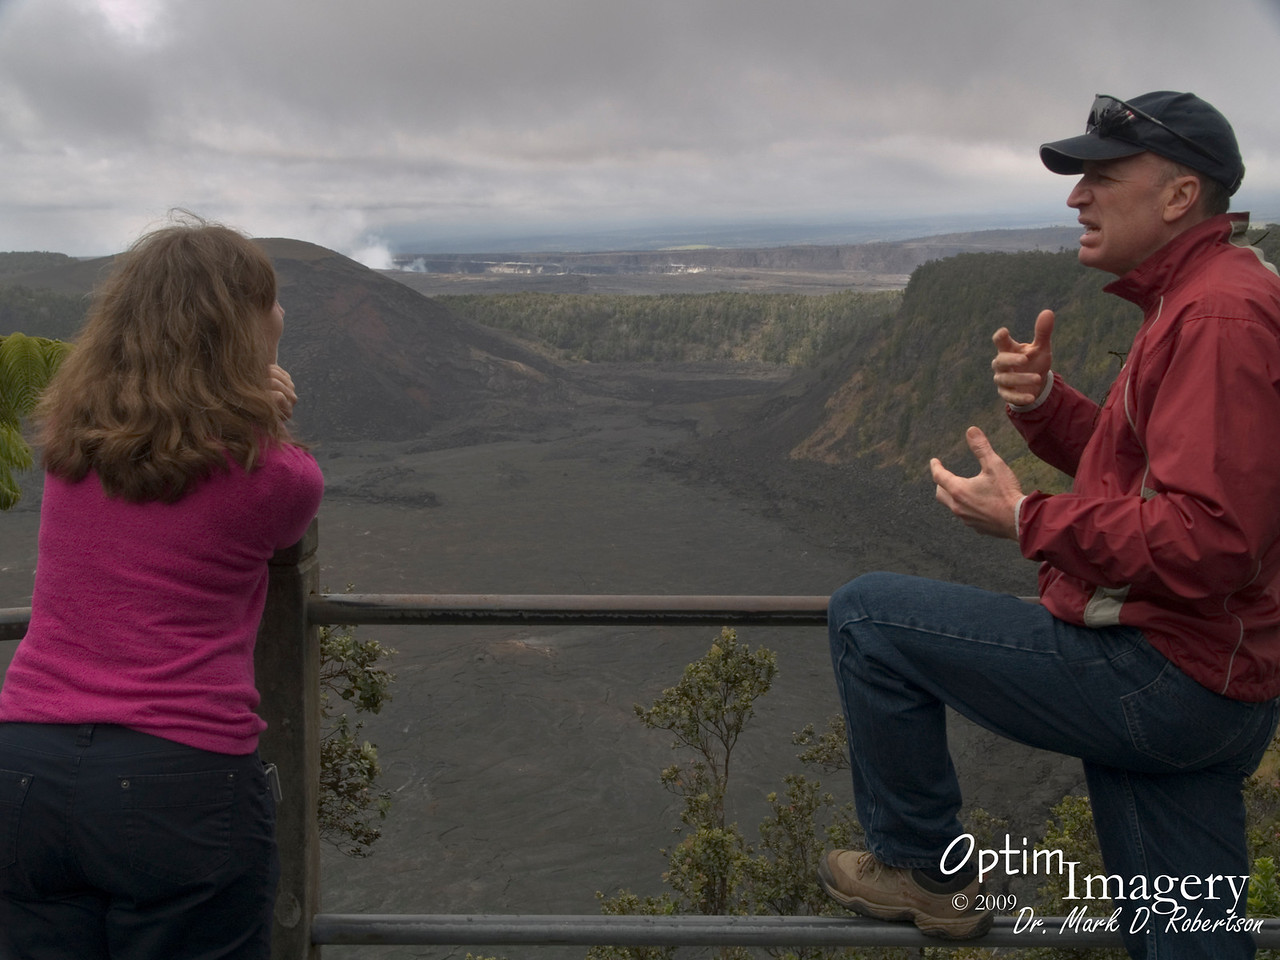 "Kilauea Iki crater entered an eruptive phase in which it had 16 episodes in November and December, 1959.  Mysteriously, magma would flow up here and form spectacular fountains, then would reverse its flow, quickly drain away, and disappear.  For more, see   <a href=""http://hvo.wr.usgs.gov/kilauea/history/1959Nov14/#episodes"">http://hvo.wr.usgs.gov/kilauea/history/1959Nov14/#episodes</a>"